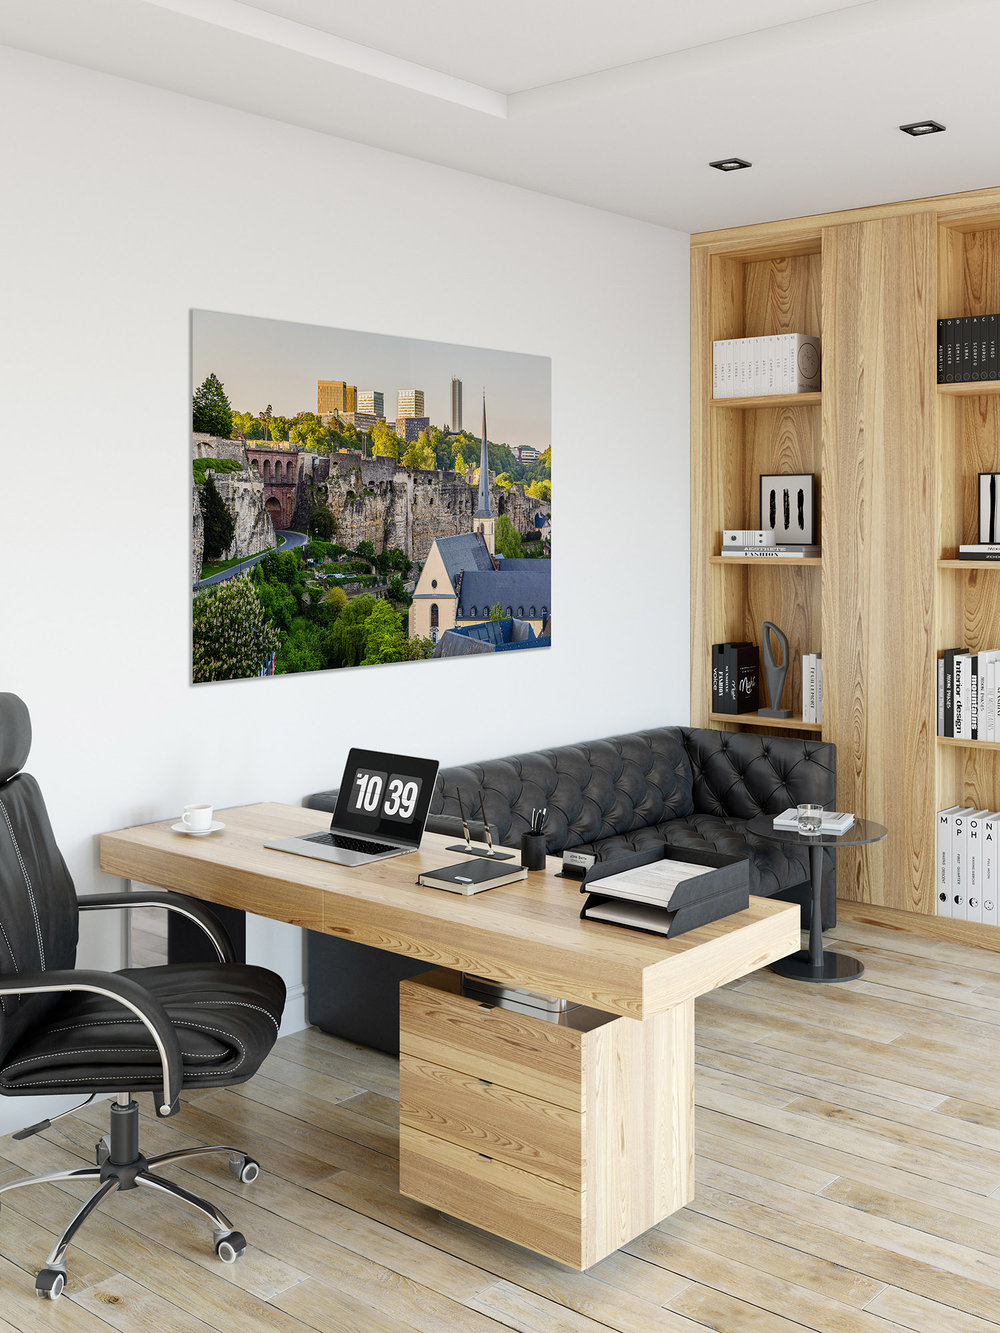 Luxembourg Acrylic Glass Print - Office - Glossy Acrylic Glass Print on Black Aluminium - 120x80cm - Eras United - Photography by Christophe Van Biesen